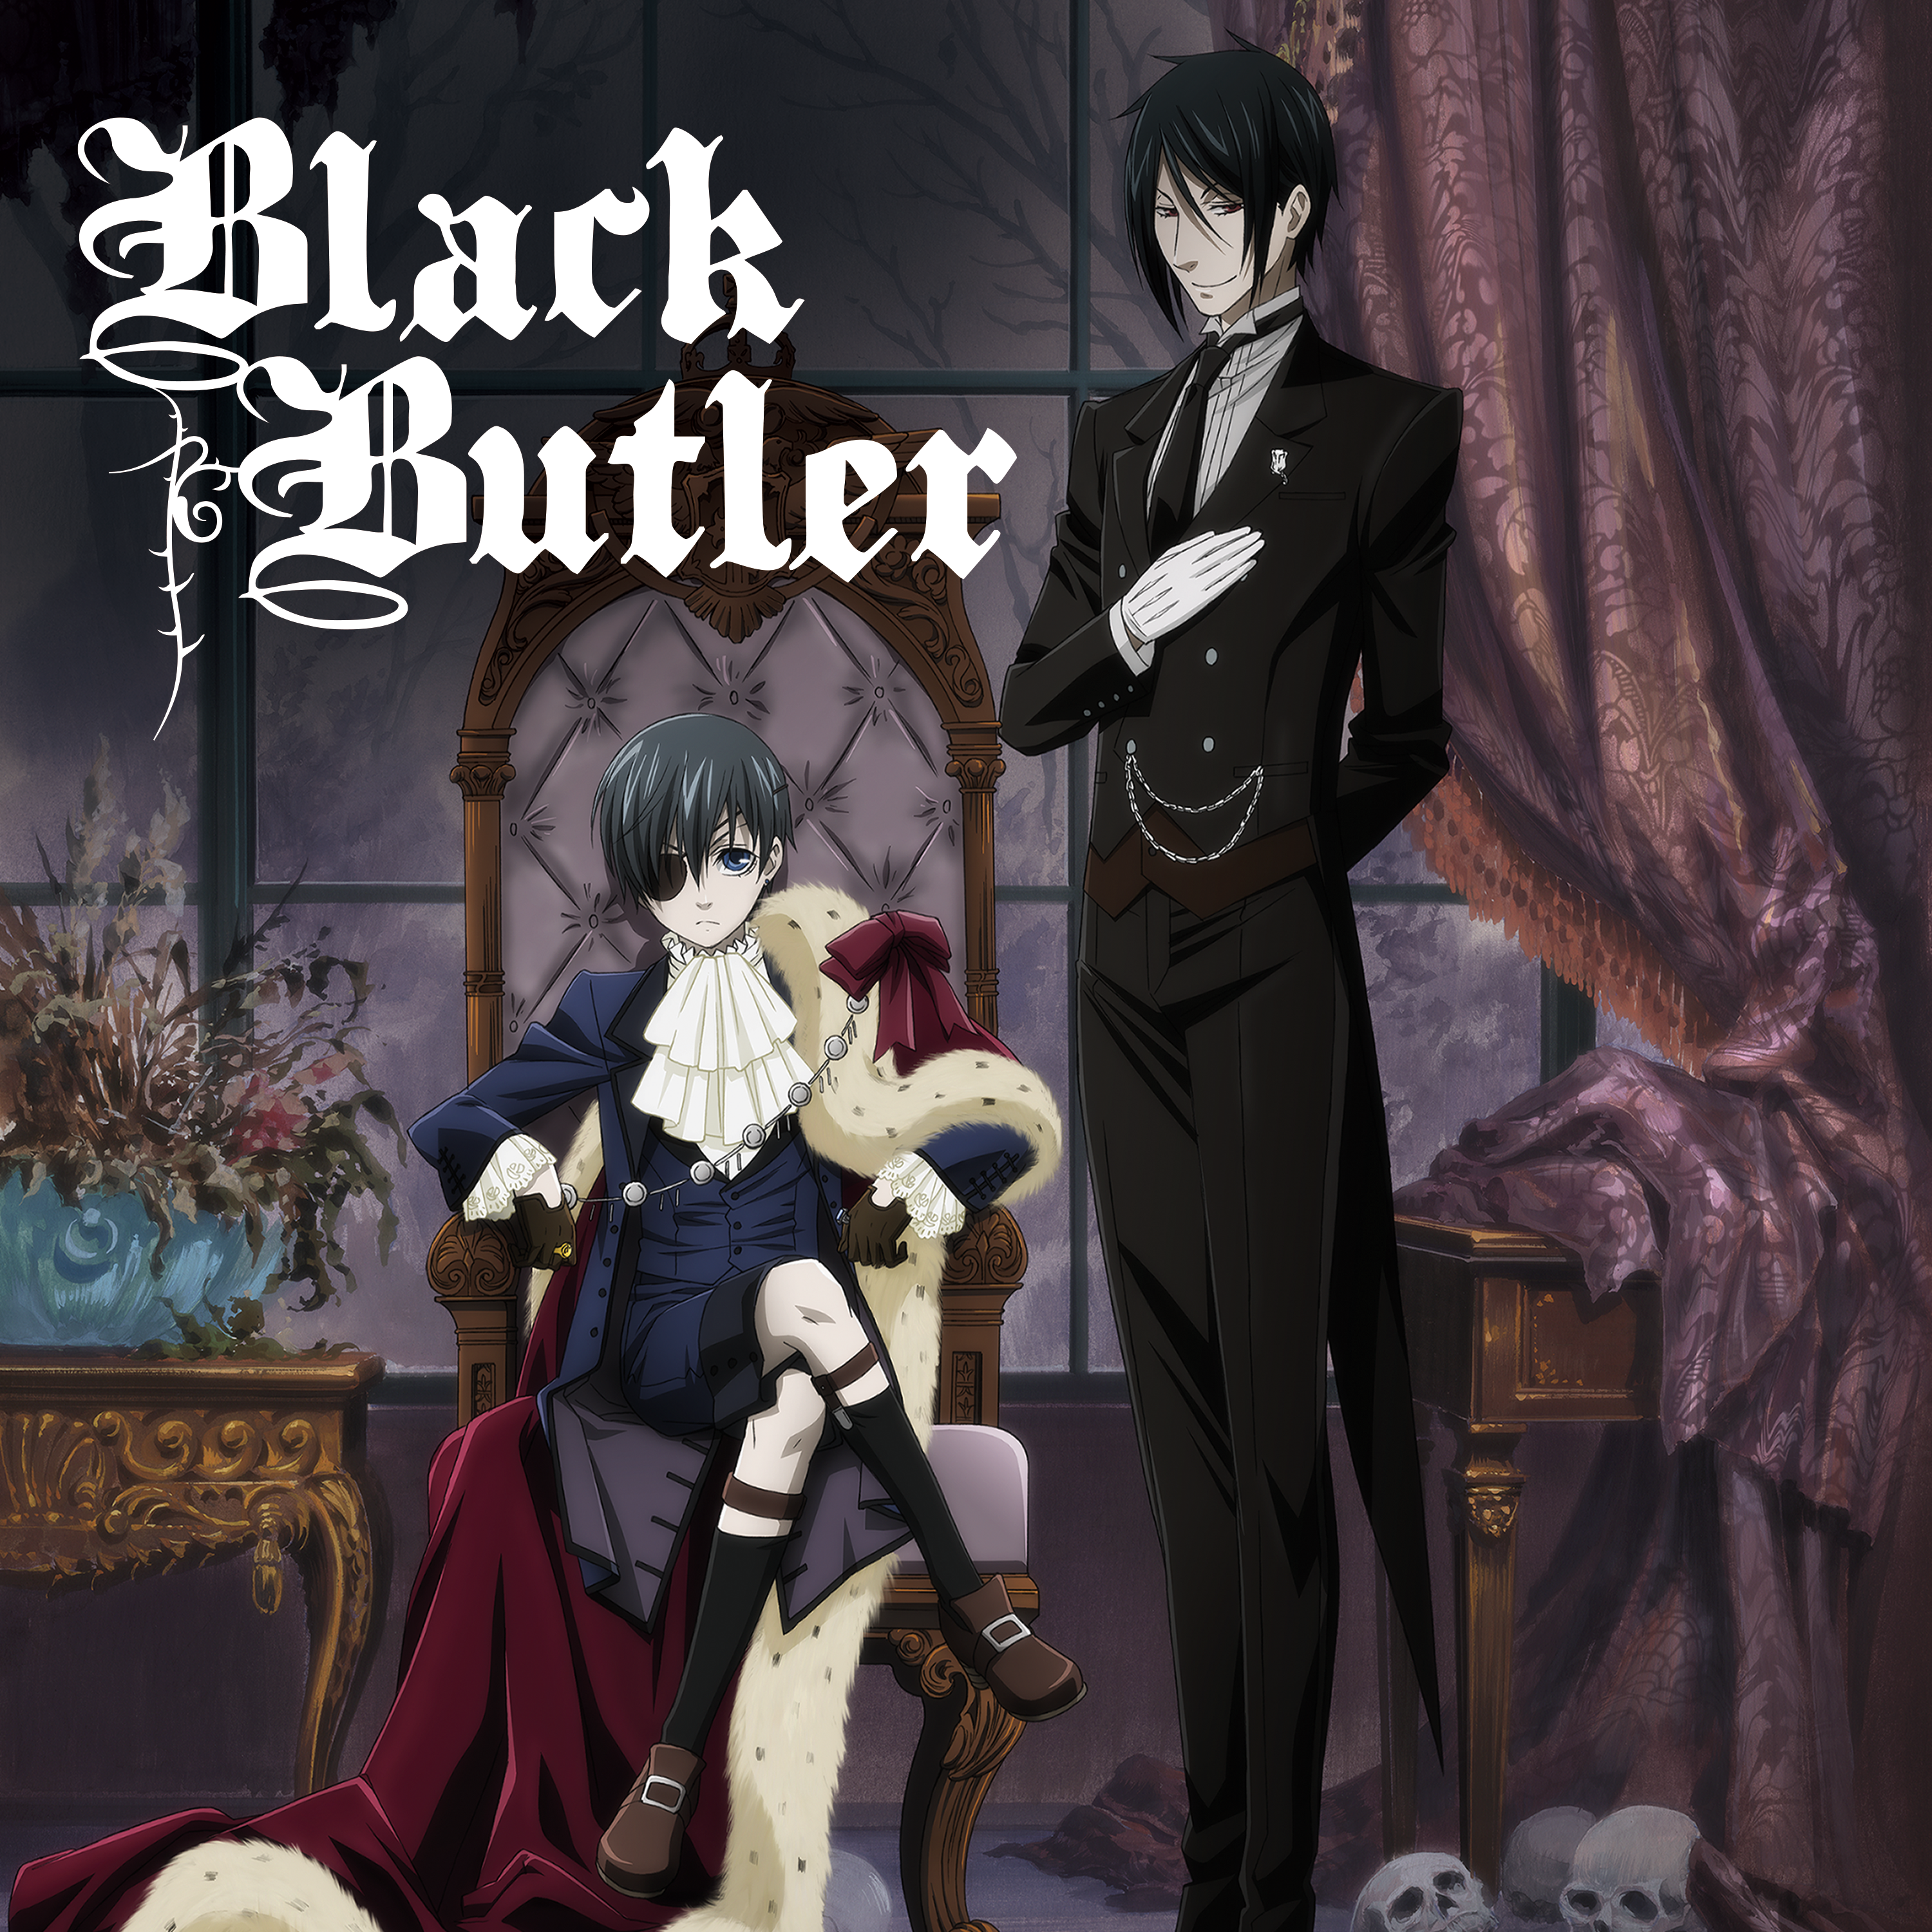 watch black butler season 2 online free english dubbed